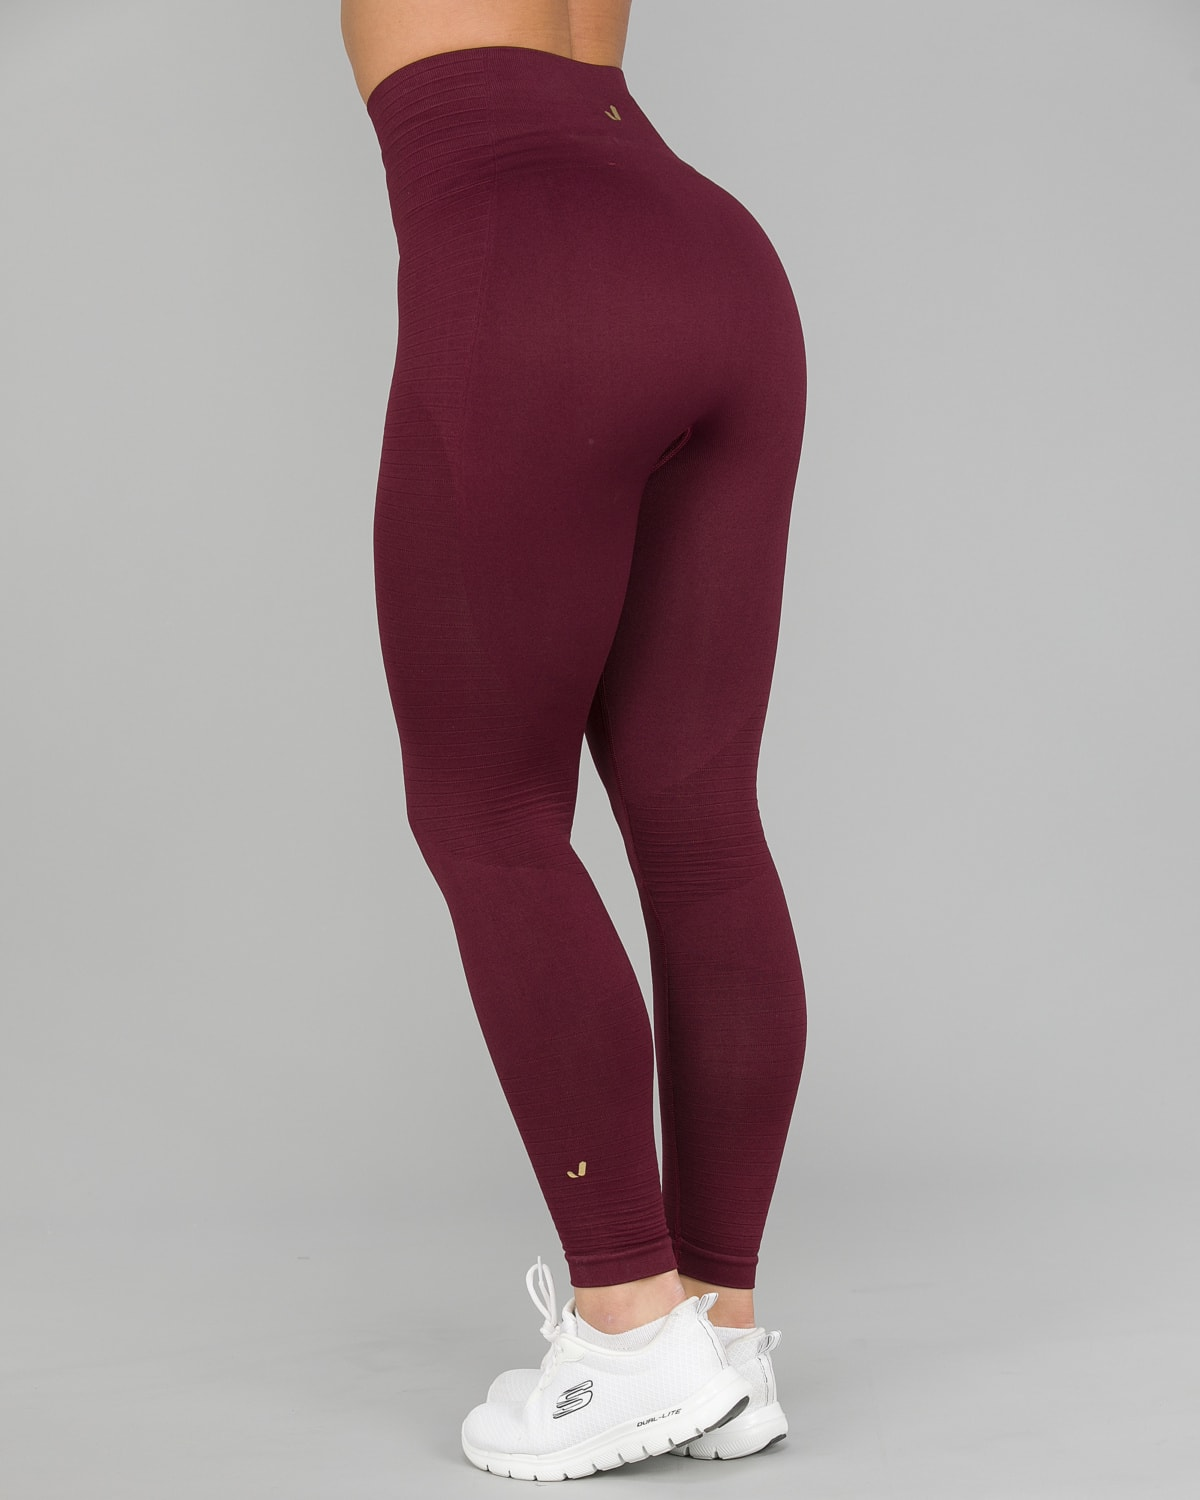 Jerf Gela 2.0 tights Maroon5